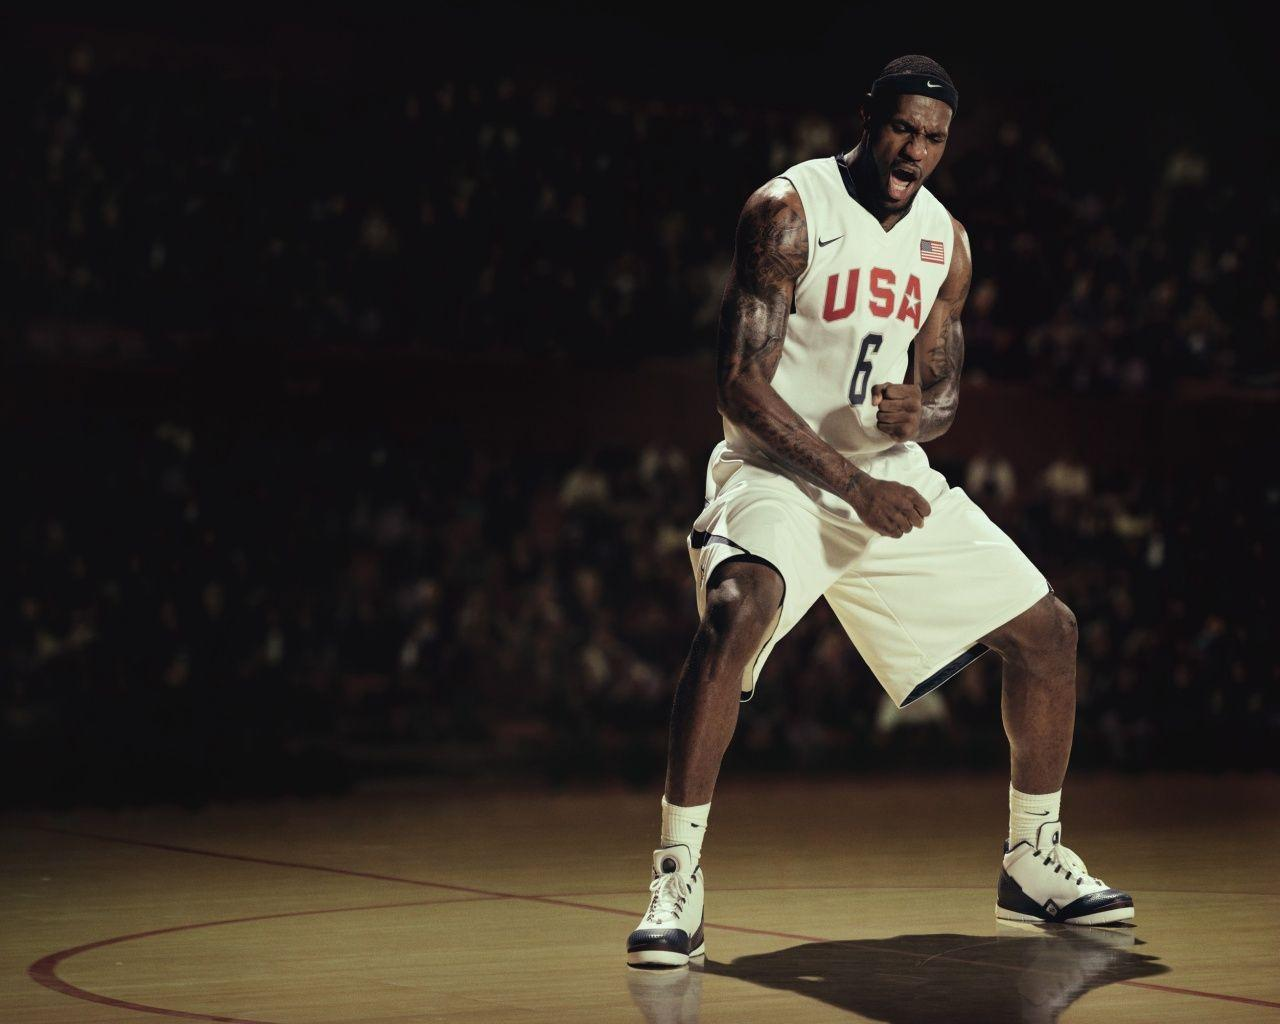 Lebron James Hd Wallpapers 9961 Images | wallgraf.